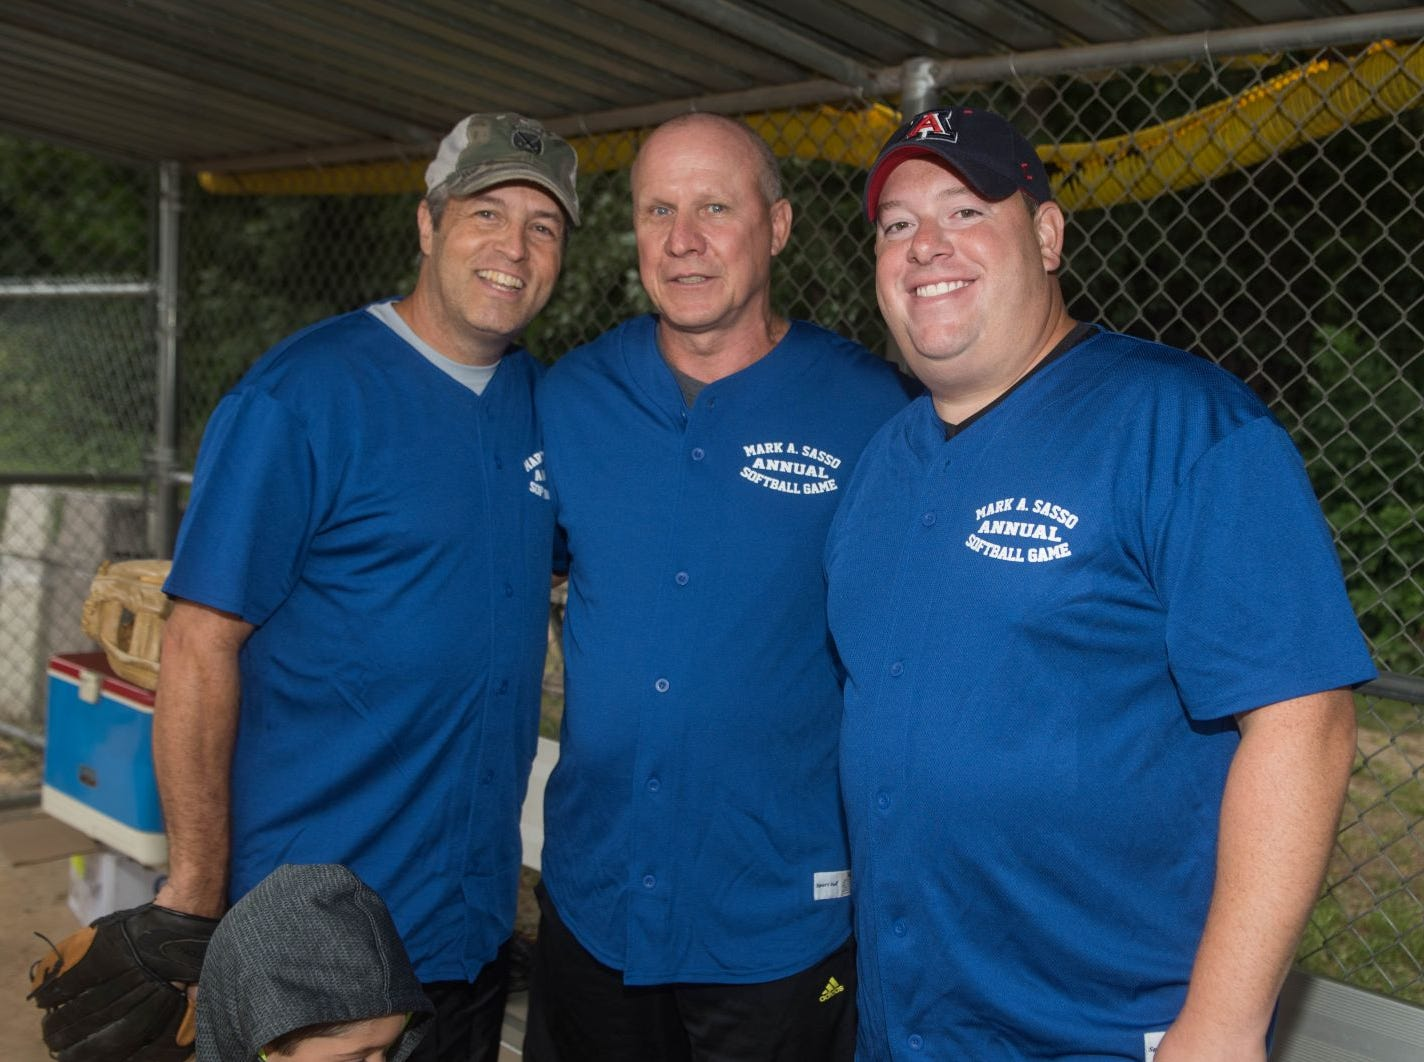 John Giannone, Brian Mullen and Dan Rosen. Mark A. Sasso Memorial Fund hosted its 10th annual Softball Fundraiser this past Saturday at Wagaraw Baseball Field in Hawthorne. Don La Greca was joined by many of his fellow ESPN personalities and celebrity guests to play against the winning ALRC team from the round robin tournament that took place throughout the day. 09/08/2018